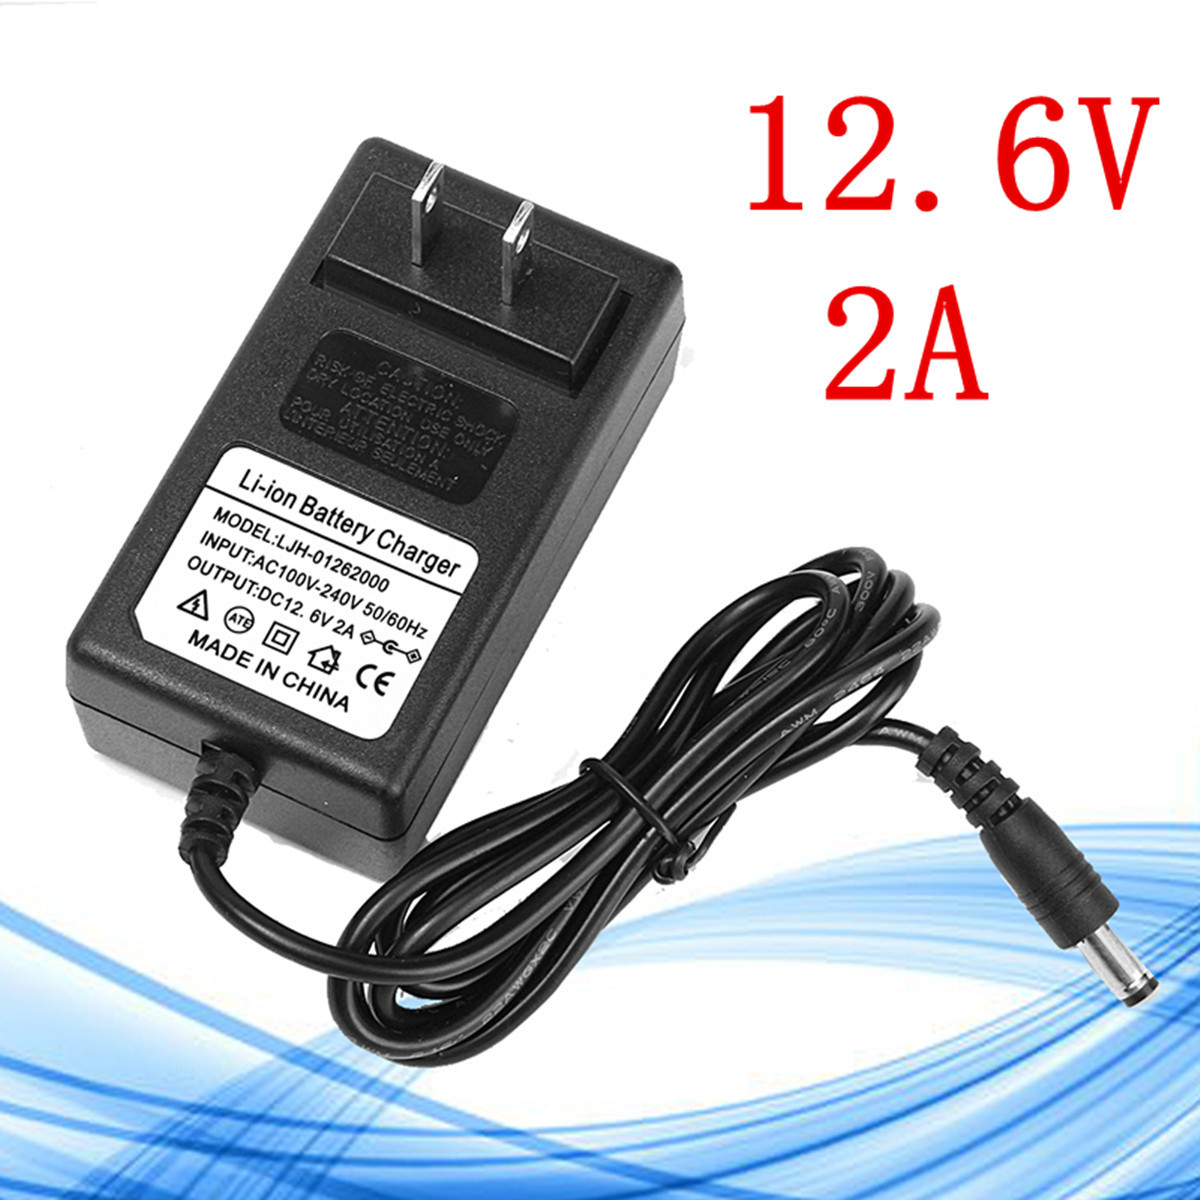 DC 12.6V 2A US Plug Adapter Charger For Lithium Ion Battery Li-ion LiPo Battery DC AdaptersDC 12.6V 2A US Plug Adapter Charger For Lithium Ion Battery Li-ion LiPo Battery DC Adapters